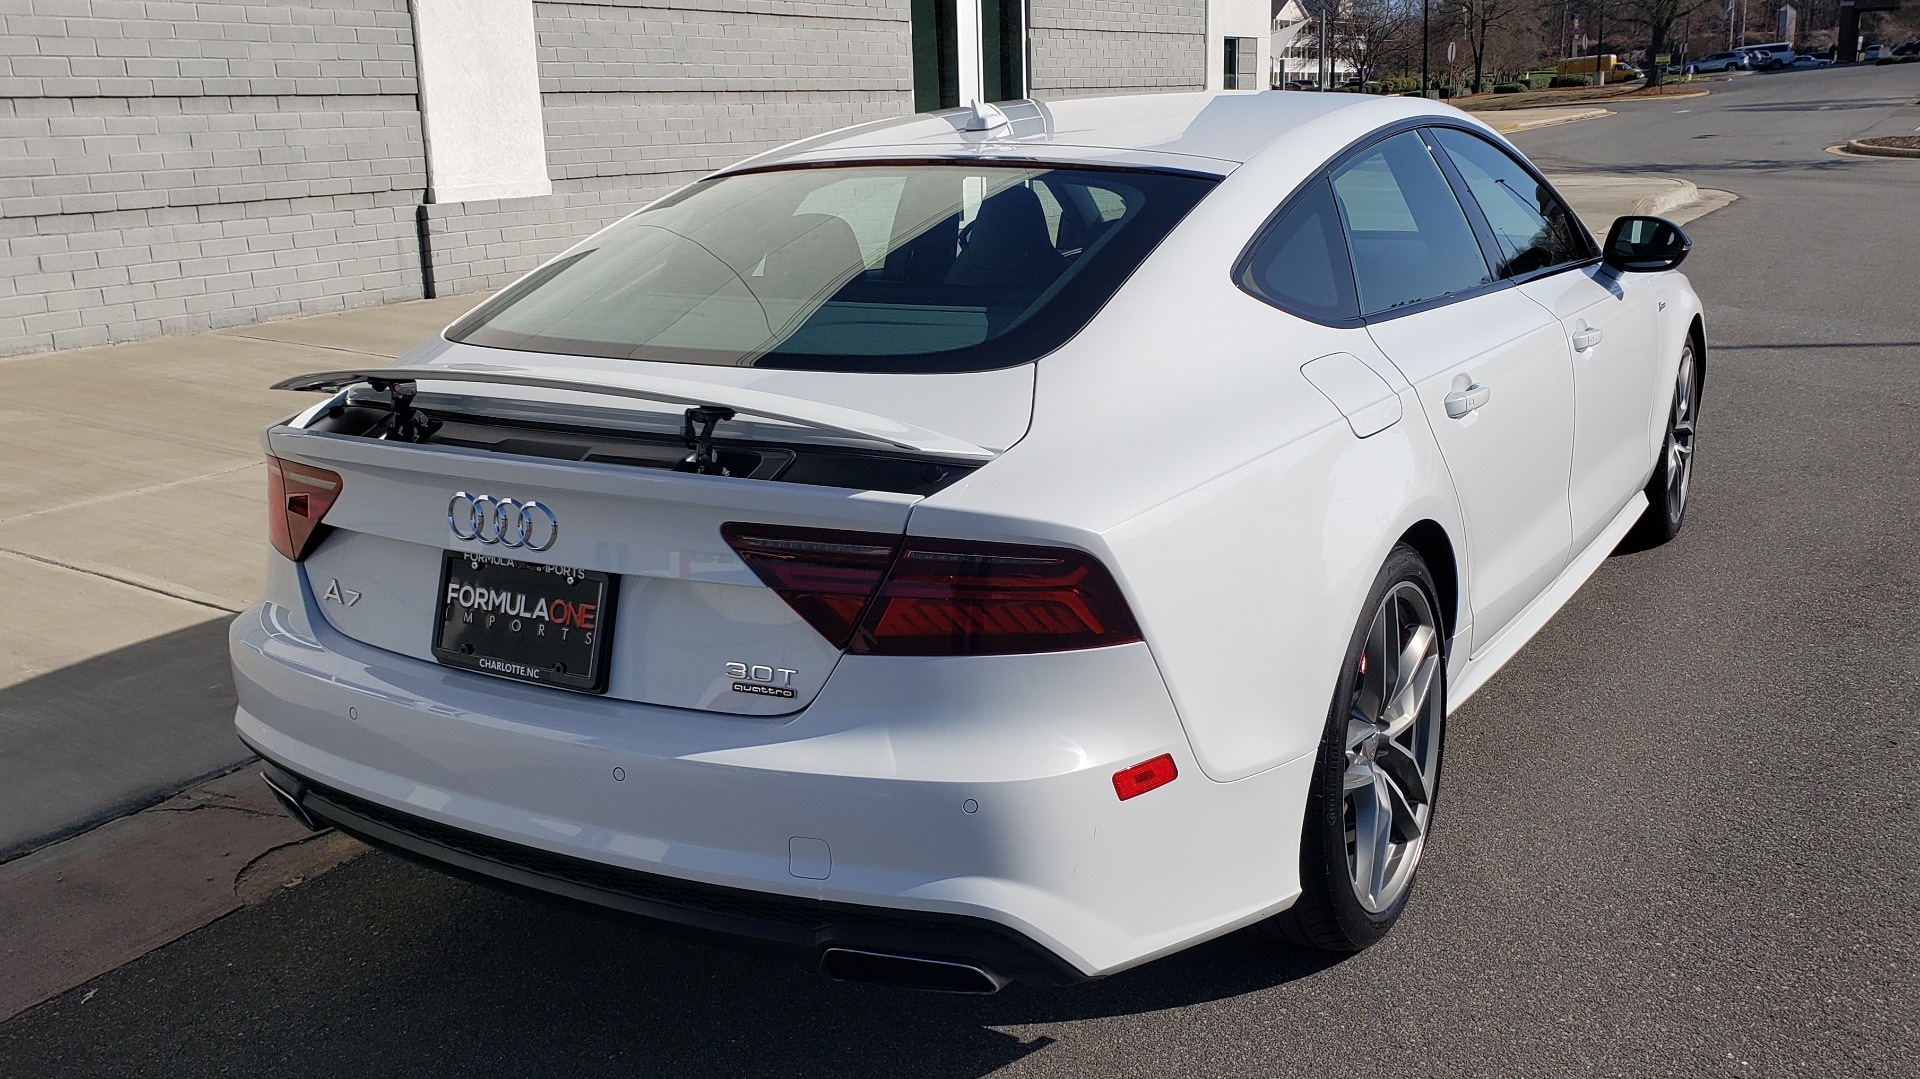 Used 2017 Audi A7 COMPETITION PRESTIGE 3.0T / NAV / DRVR ASST / ADAPT CRUISE for sale $41,995 at Formula Imports in Charlotte NC 28227 2